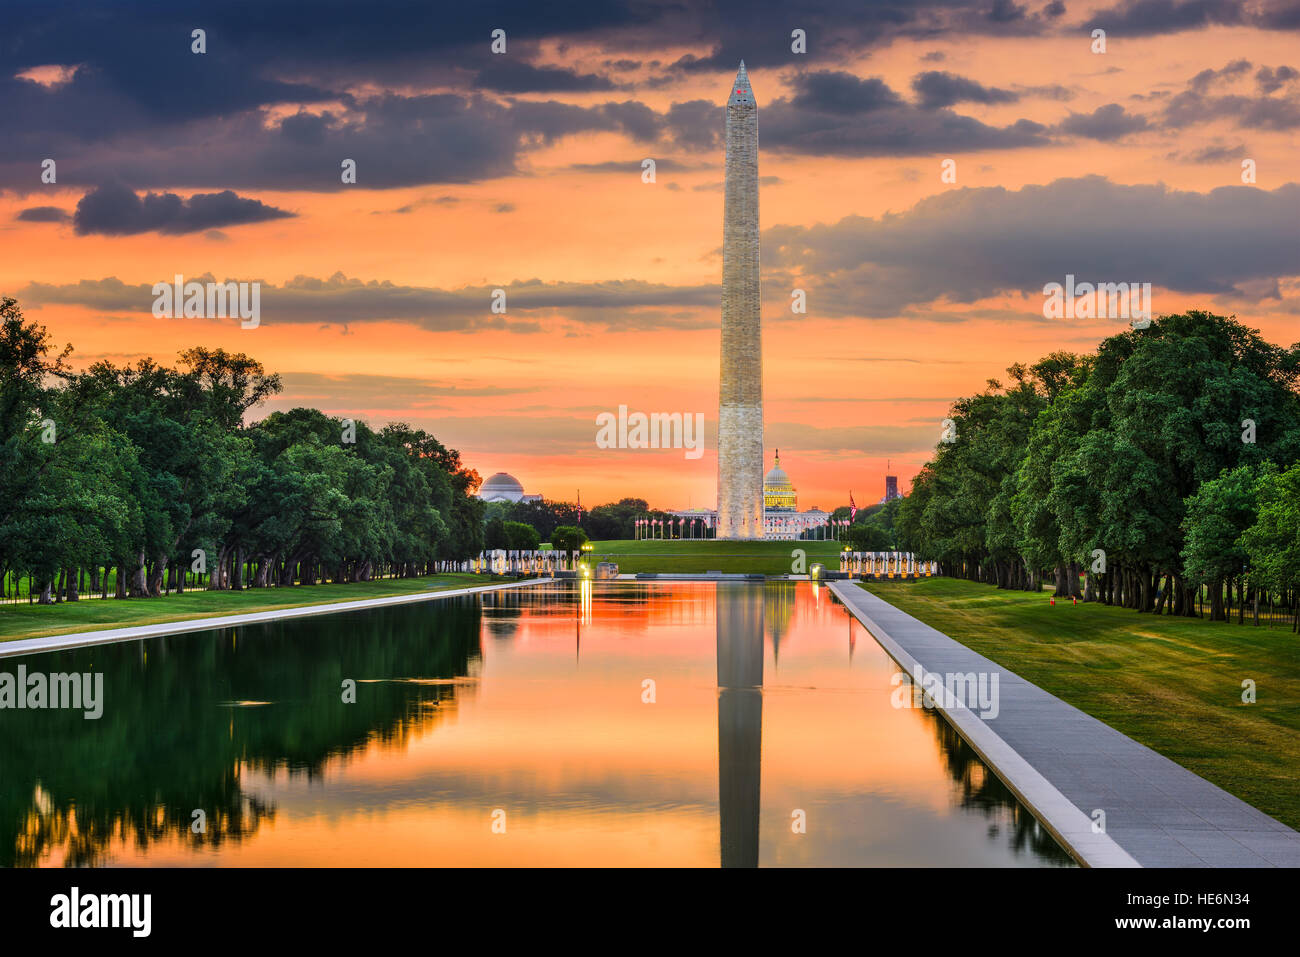 Washington Monument on the Reflecting Pool in Washington, DC. - Stock Image